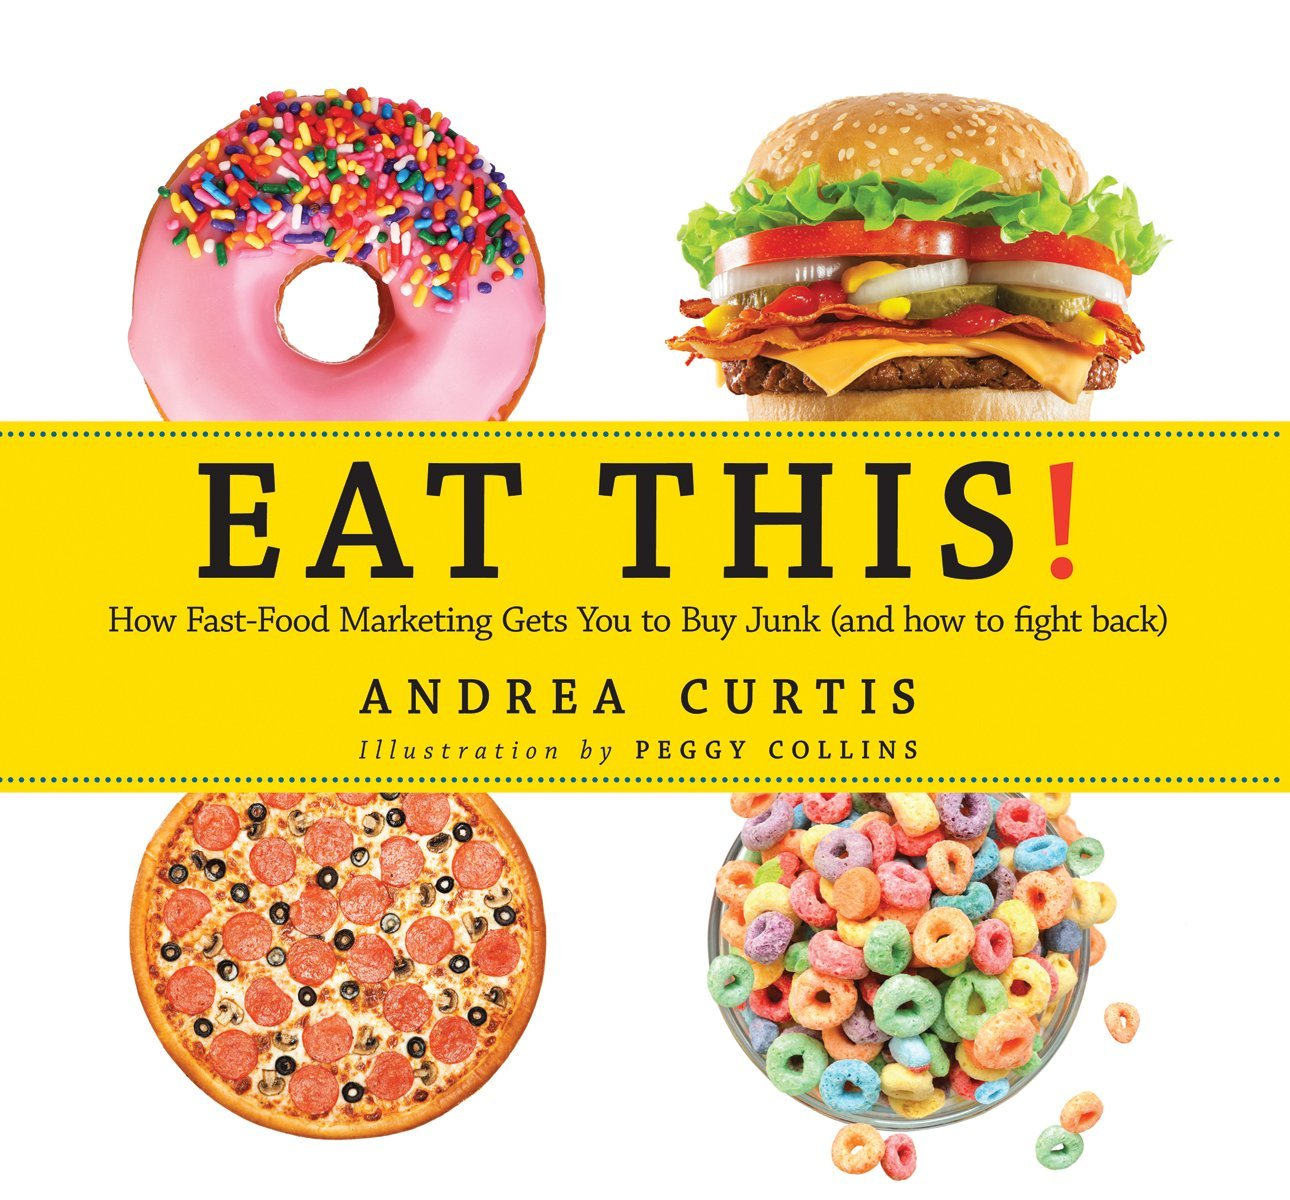 Eat This! by Andrea Curtis | SLJ Review